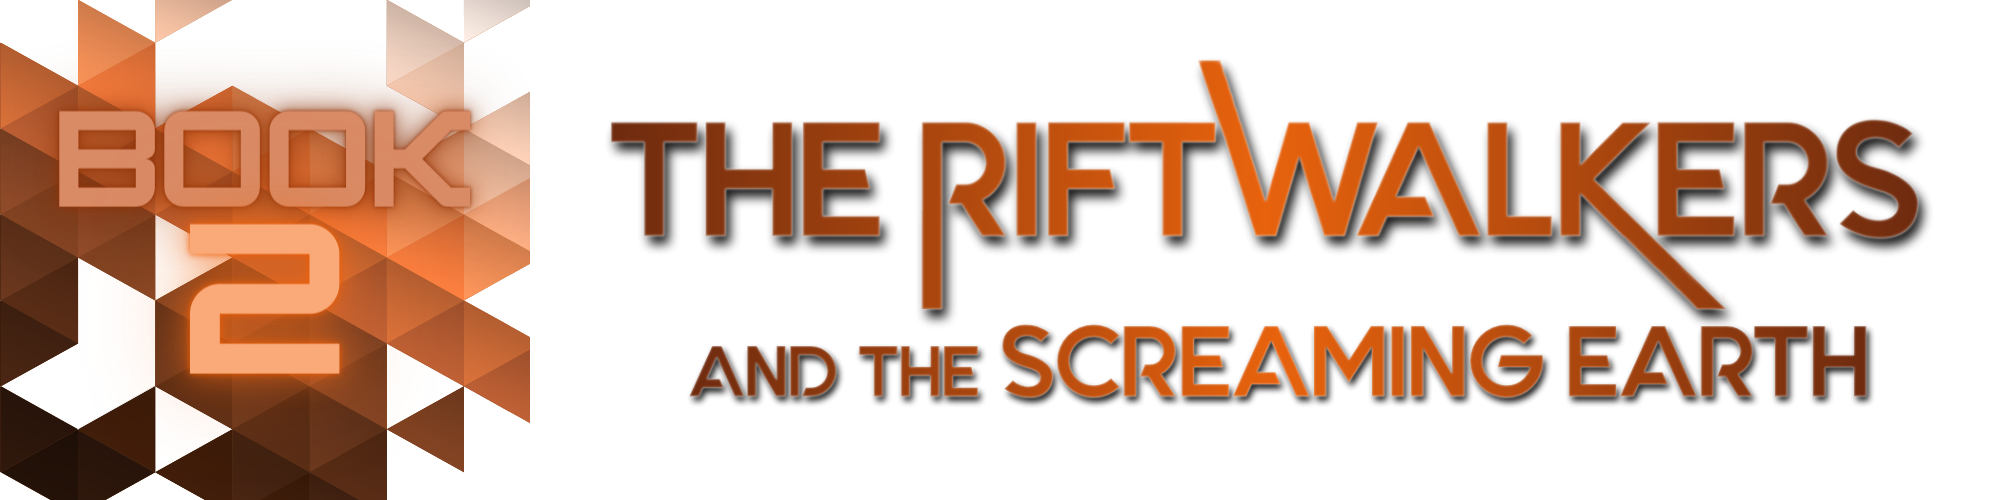 Book 2:The Riftwalkers and the Screaming Earth